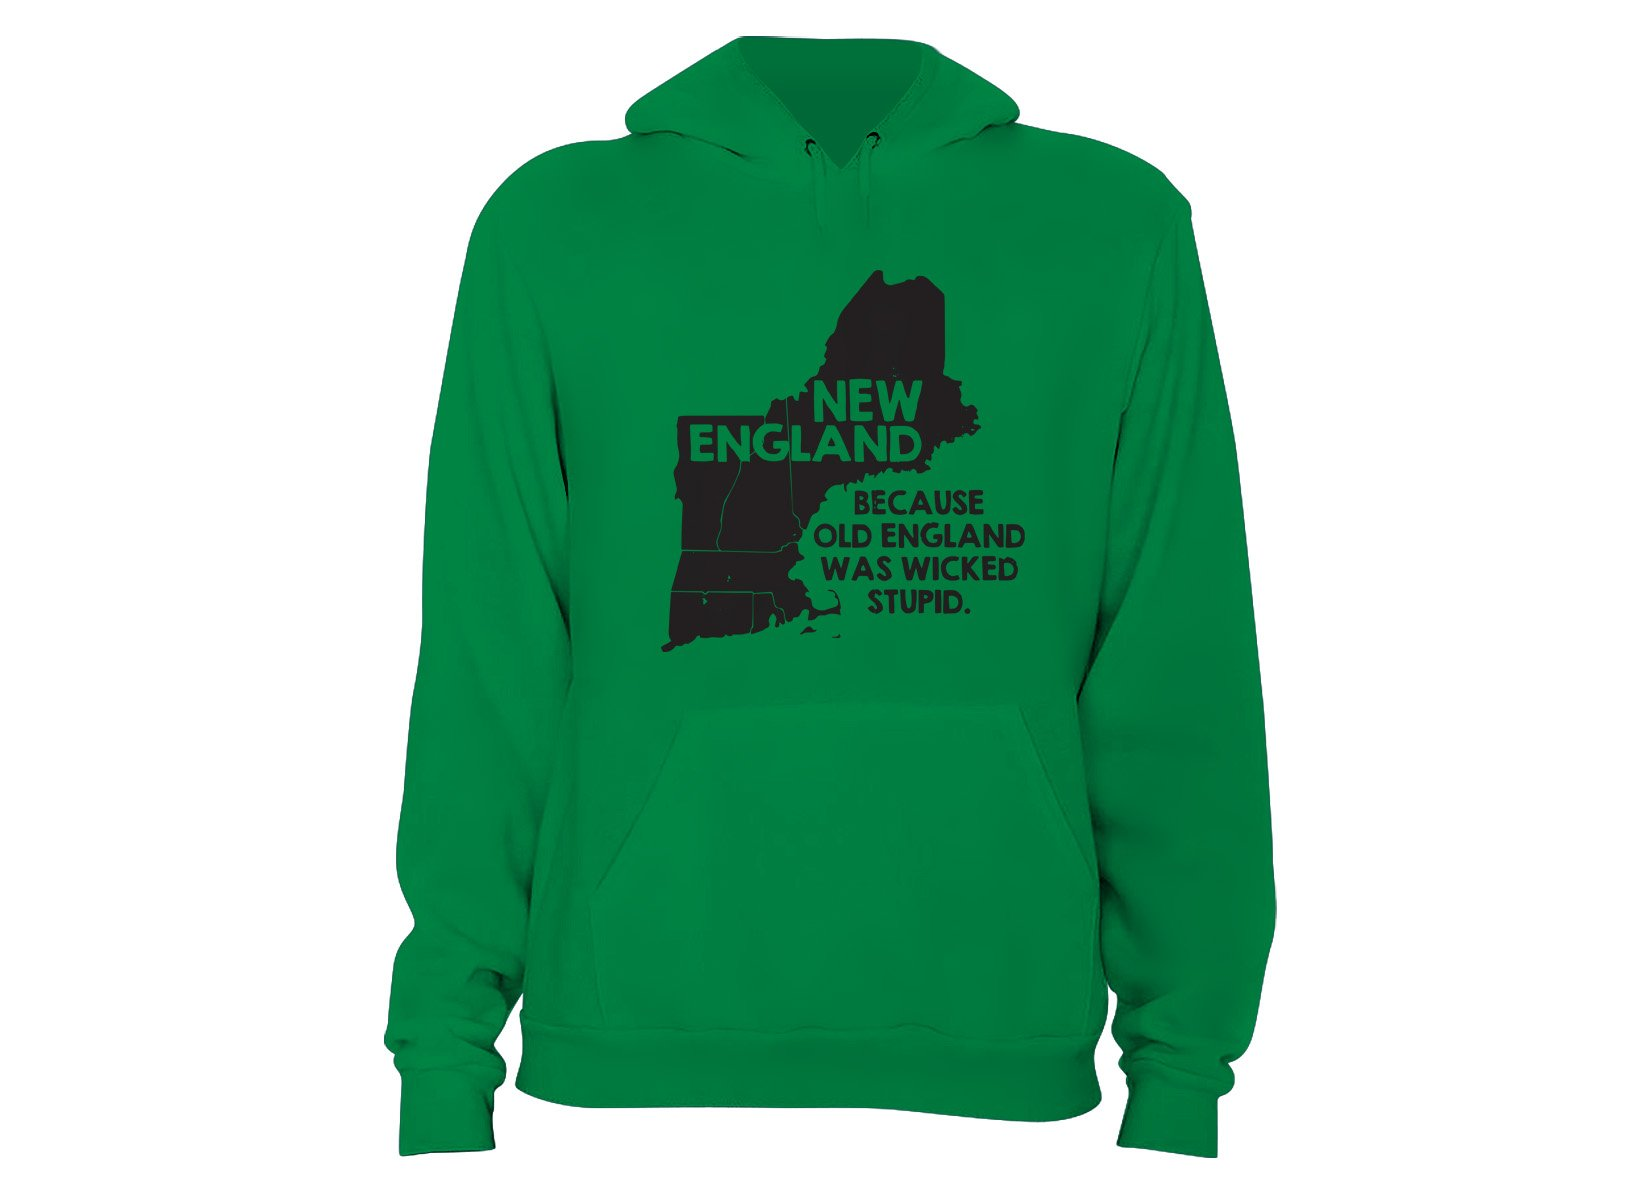 New England, Because Old England Was Wicked Stupid on Hoodie